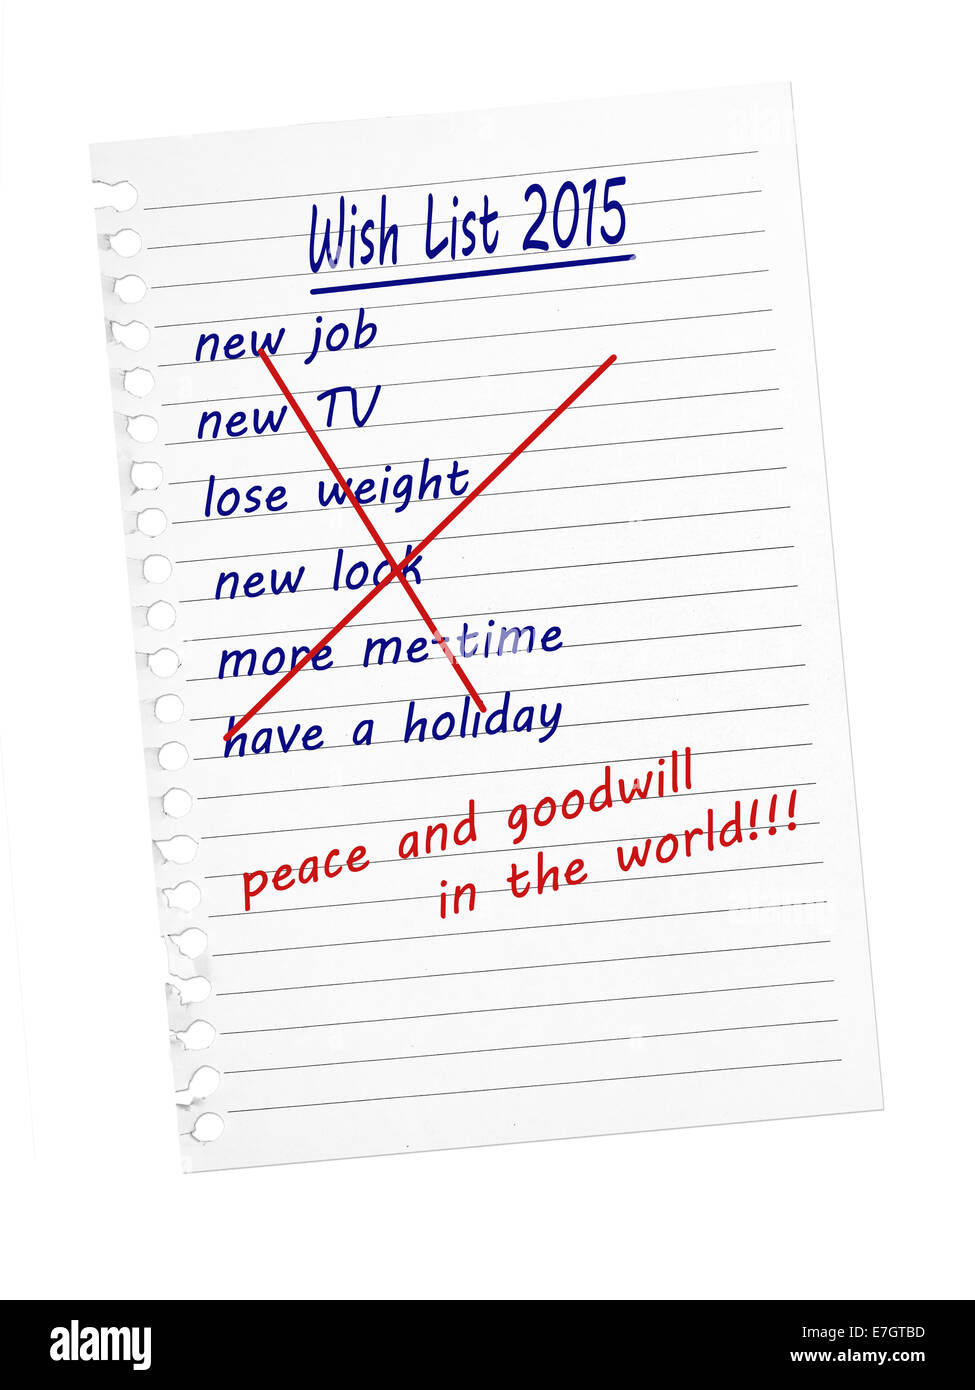 Wish list. From materialistic self-centred to world peace and goodwill. - Stock Image